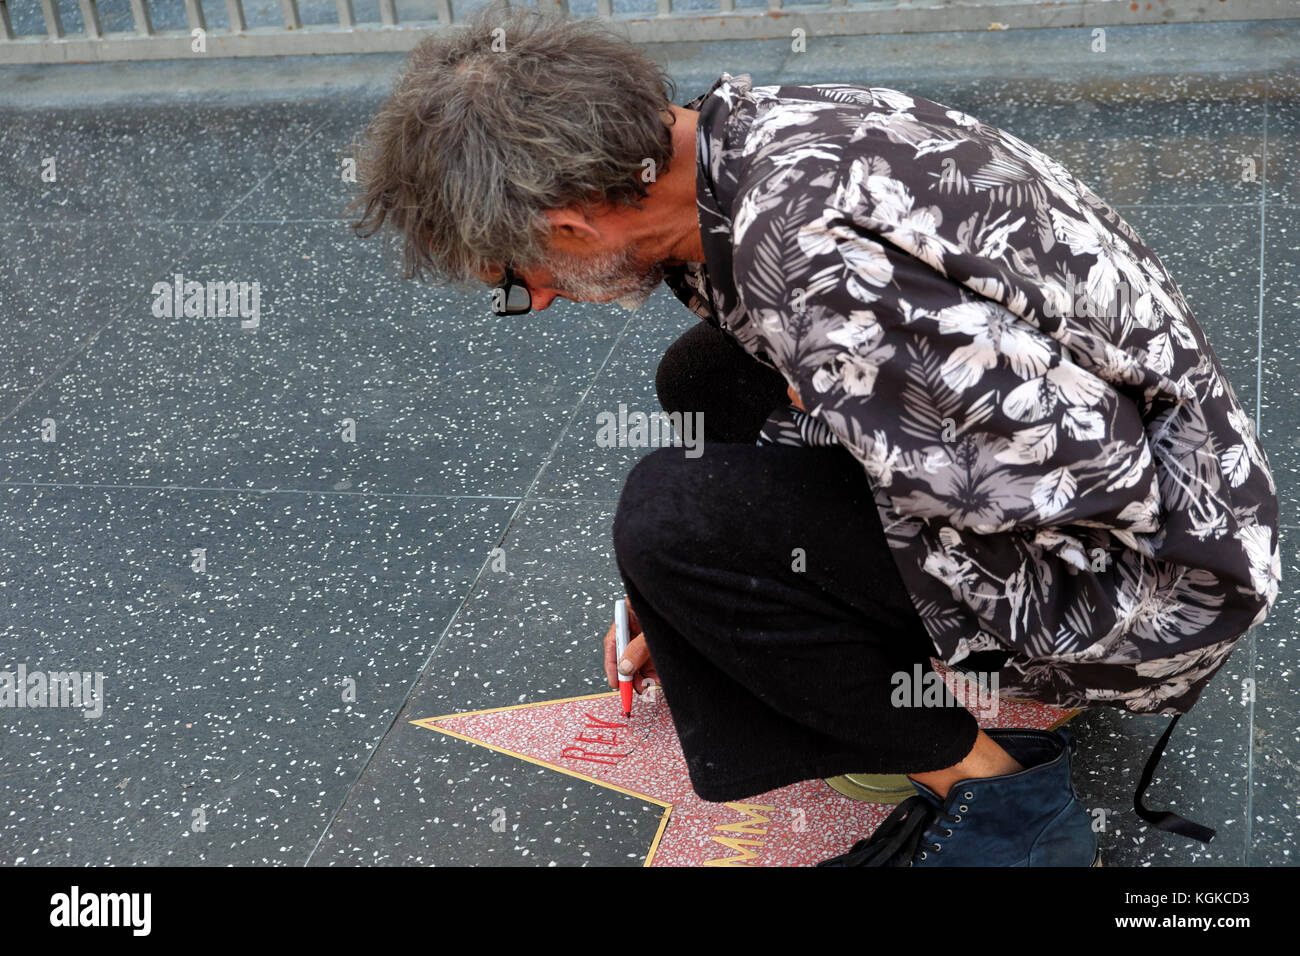 A homeless man signs his name on a Hollywood Walk of Fame Star on Hollywood Boulevard in Los Angeles, California Stock Photo